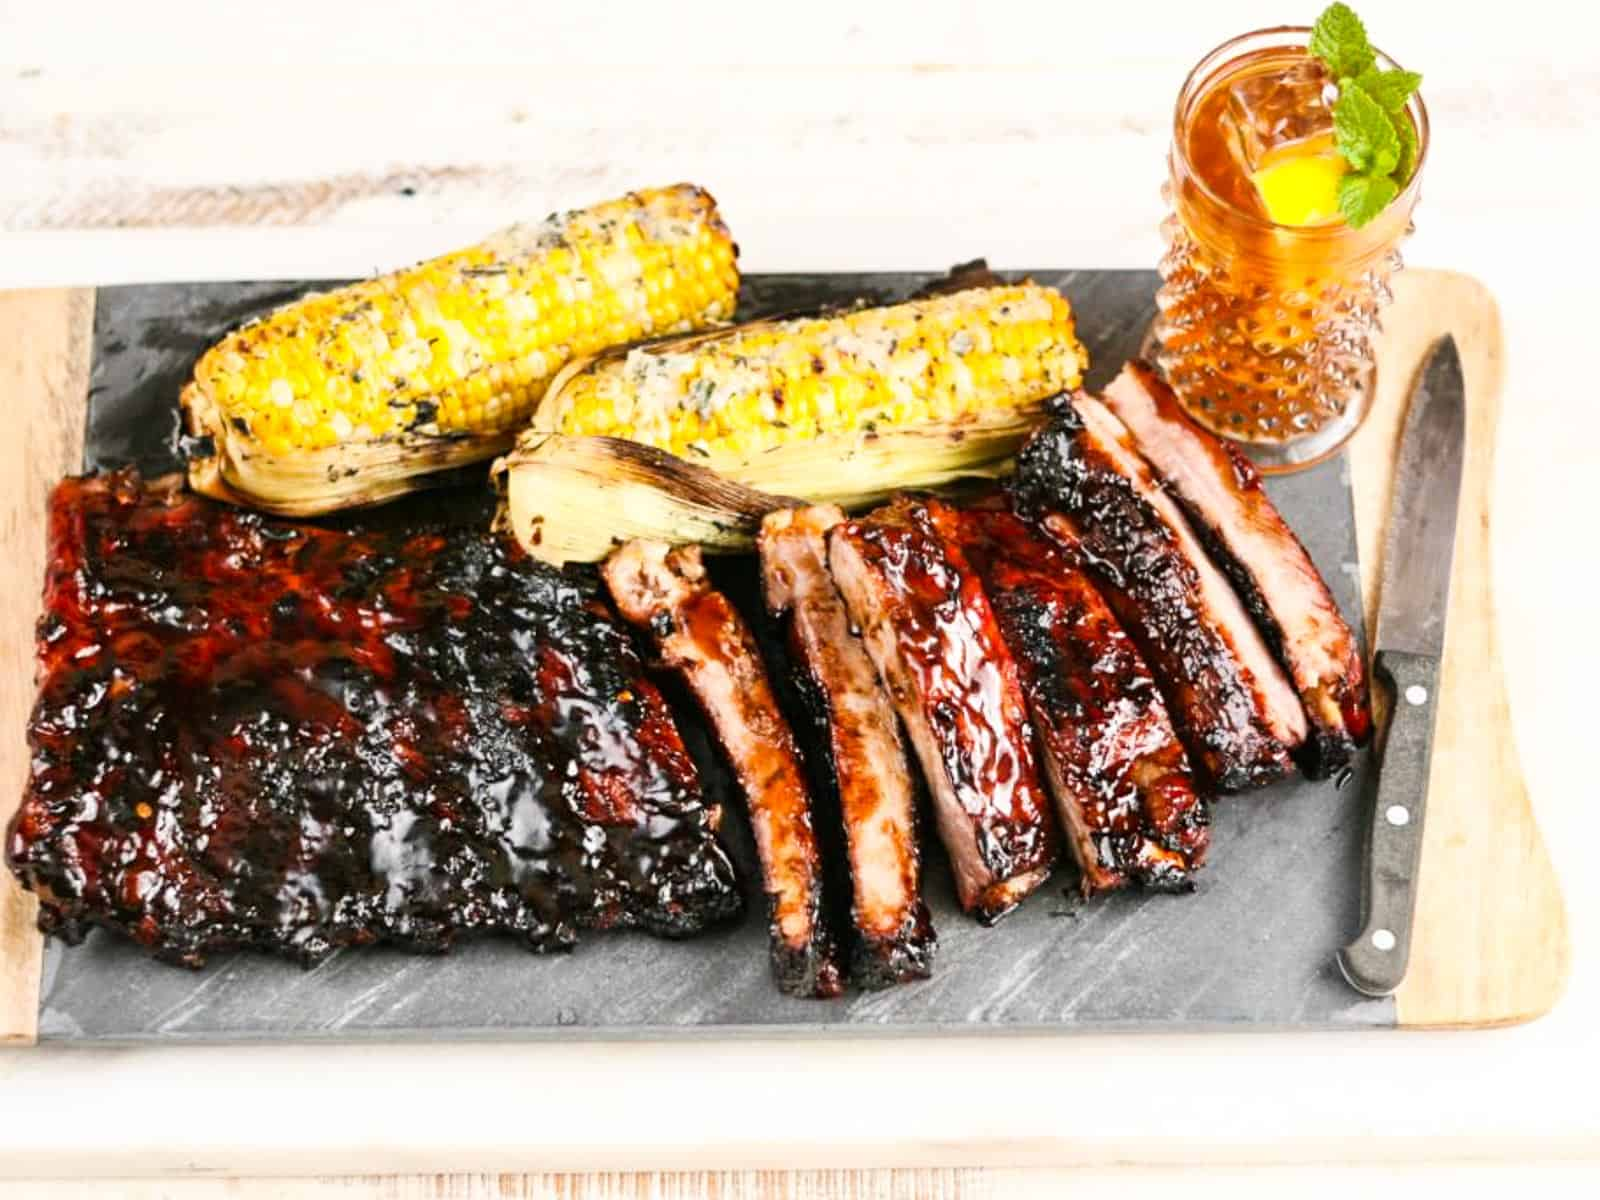 A pile of BBQ ribs with corn and sweet tea at a BBQ cookout.